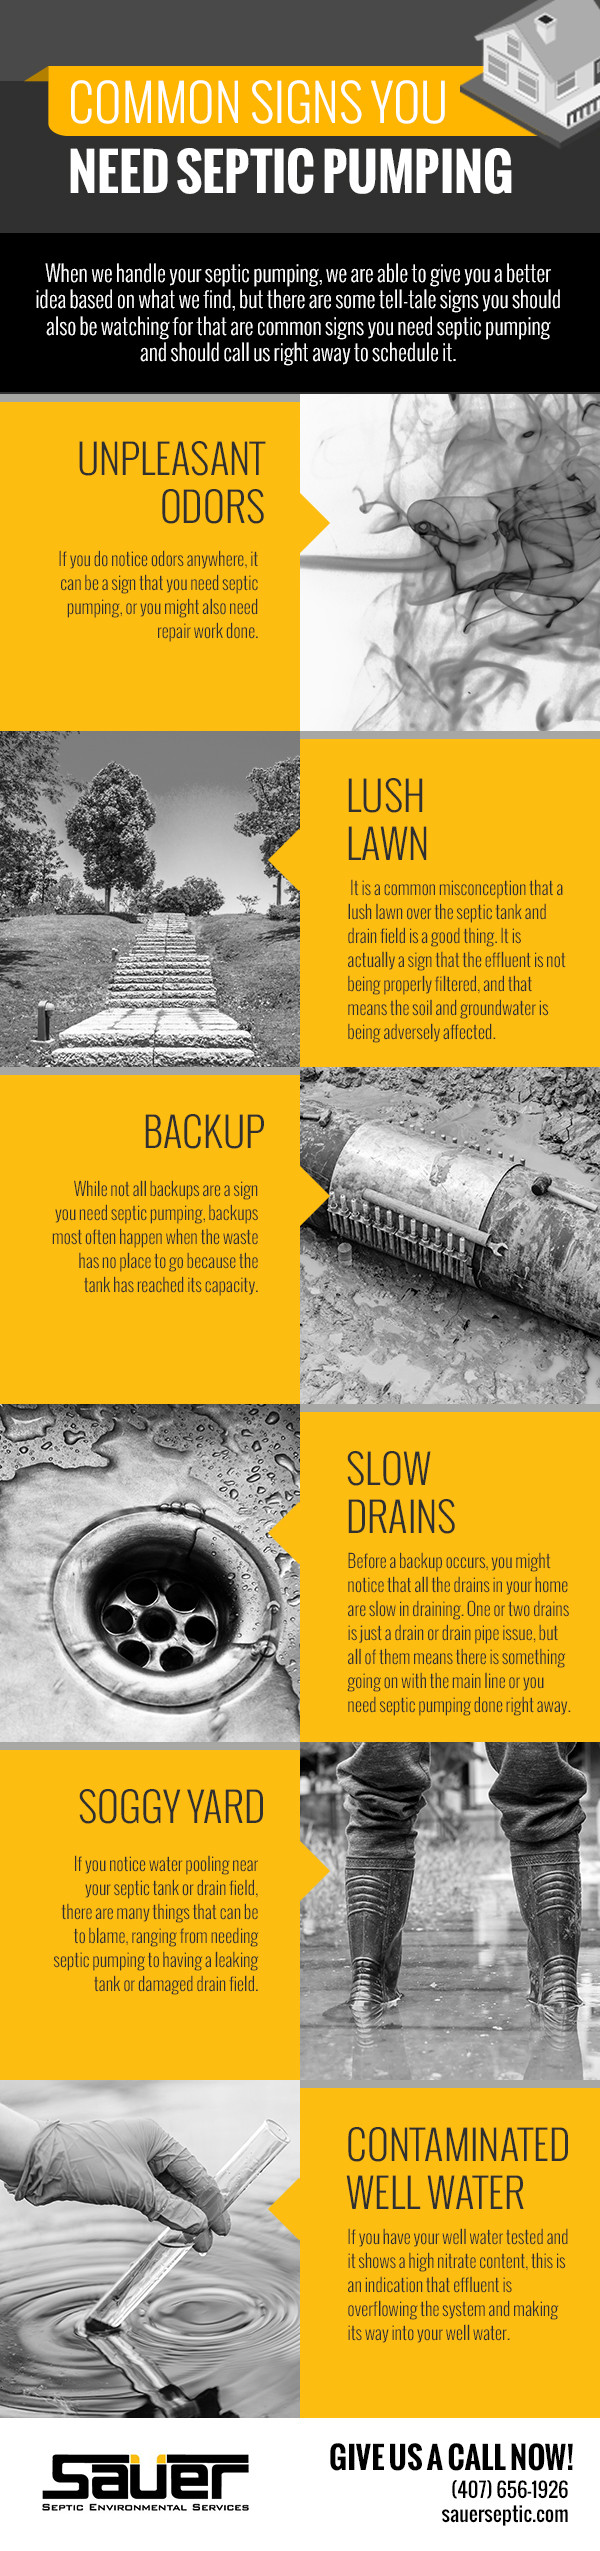 Common Signs You Need Septic Pumping [infographic]